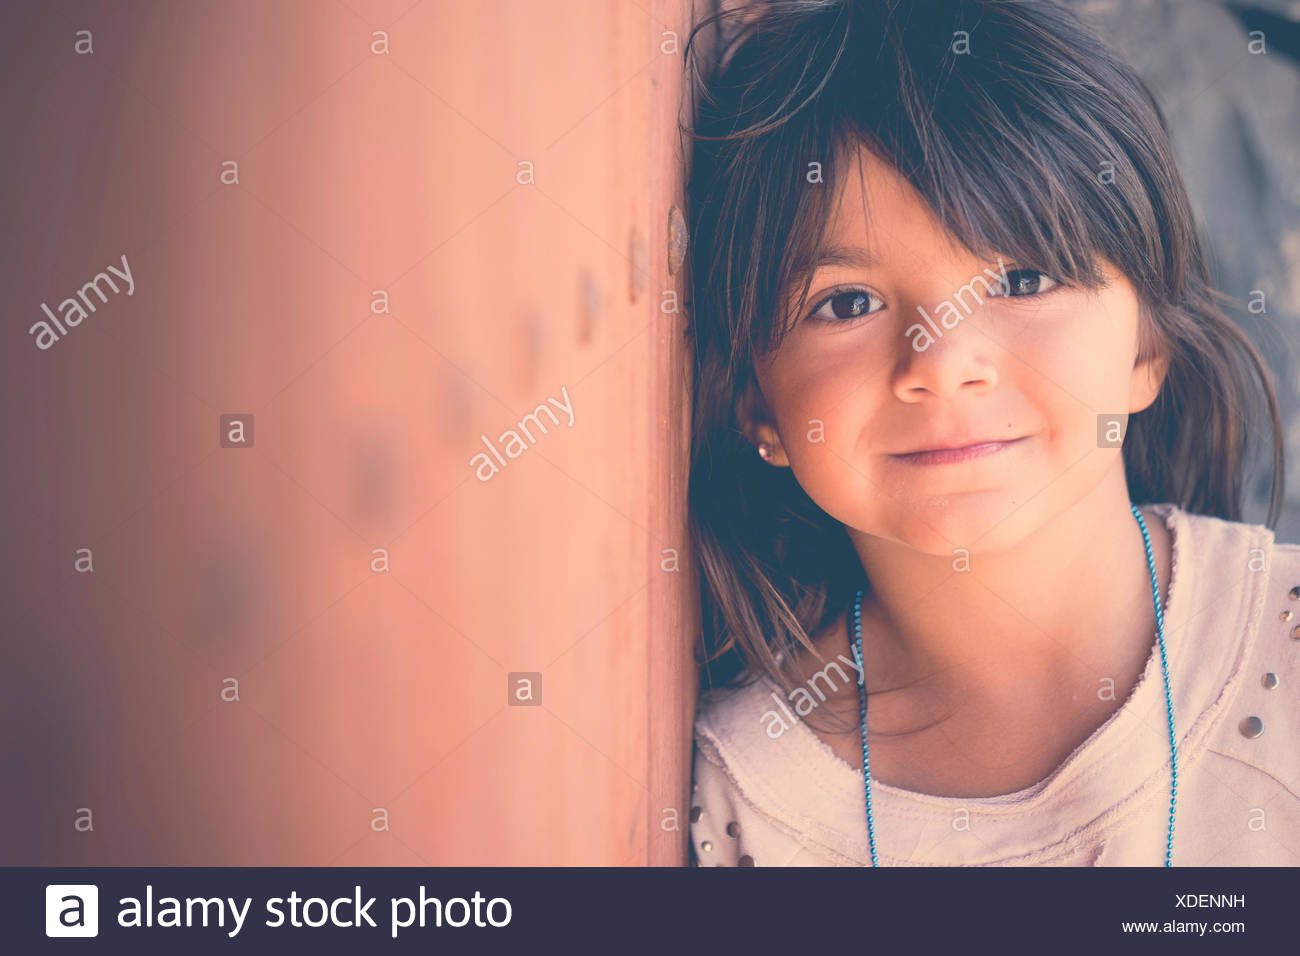 Portrait of smiling girl leaning against wall - Stock Image